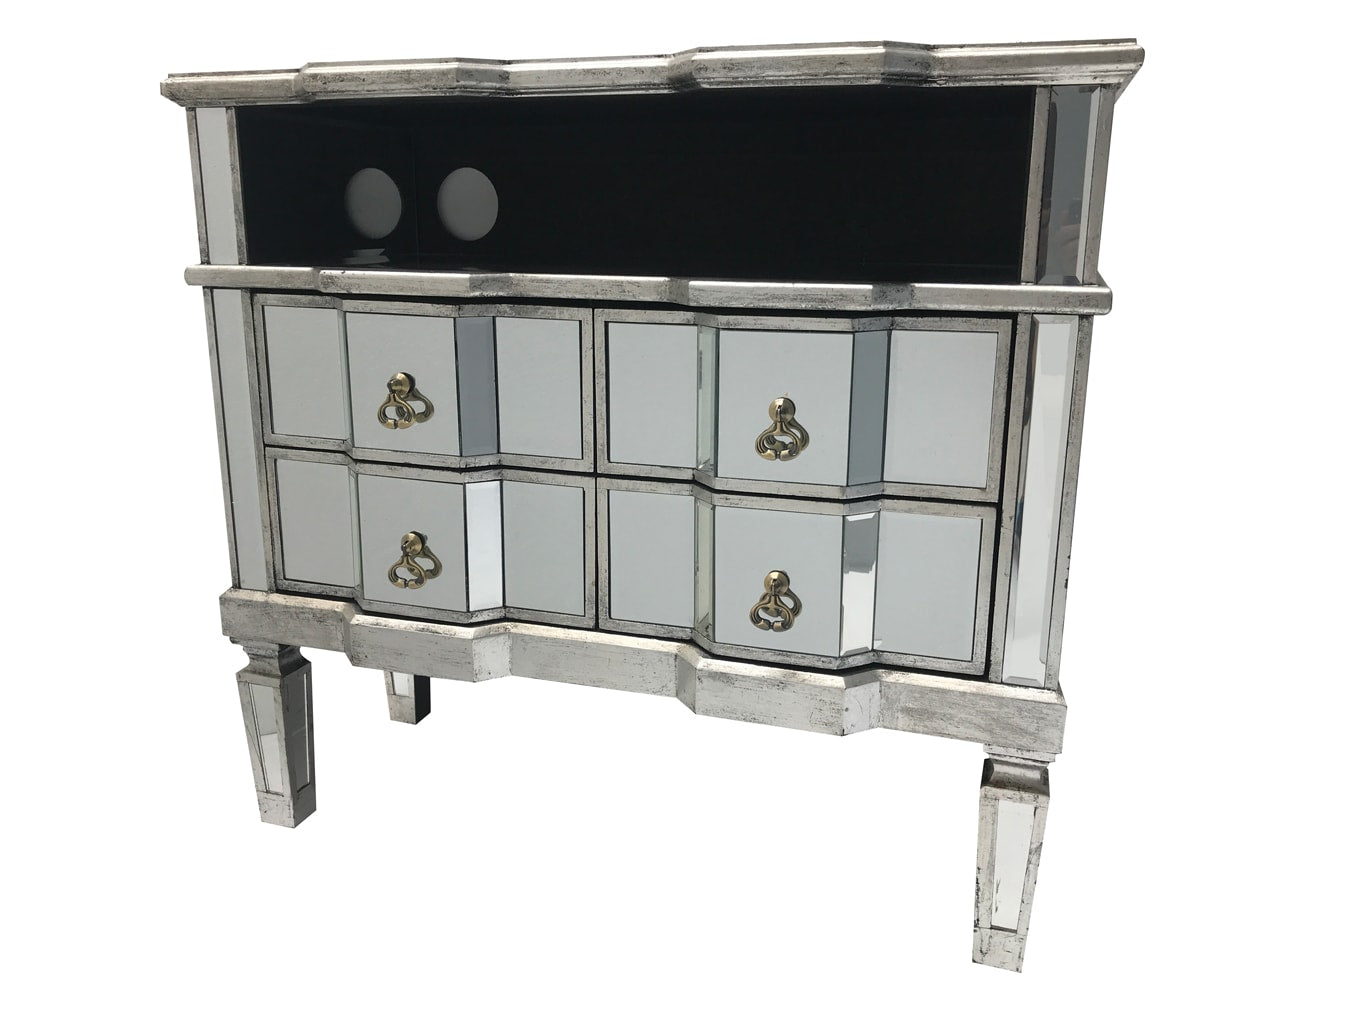 Charleston mirrored media unit, 4 draws, brass drop handles, wood and mirror, antiqued silver